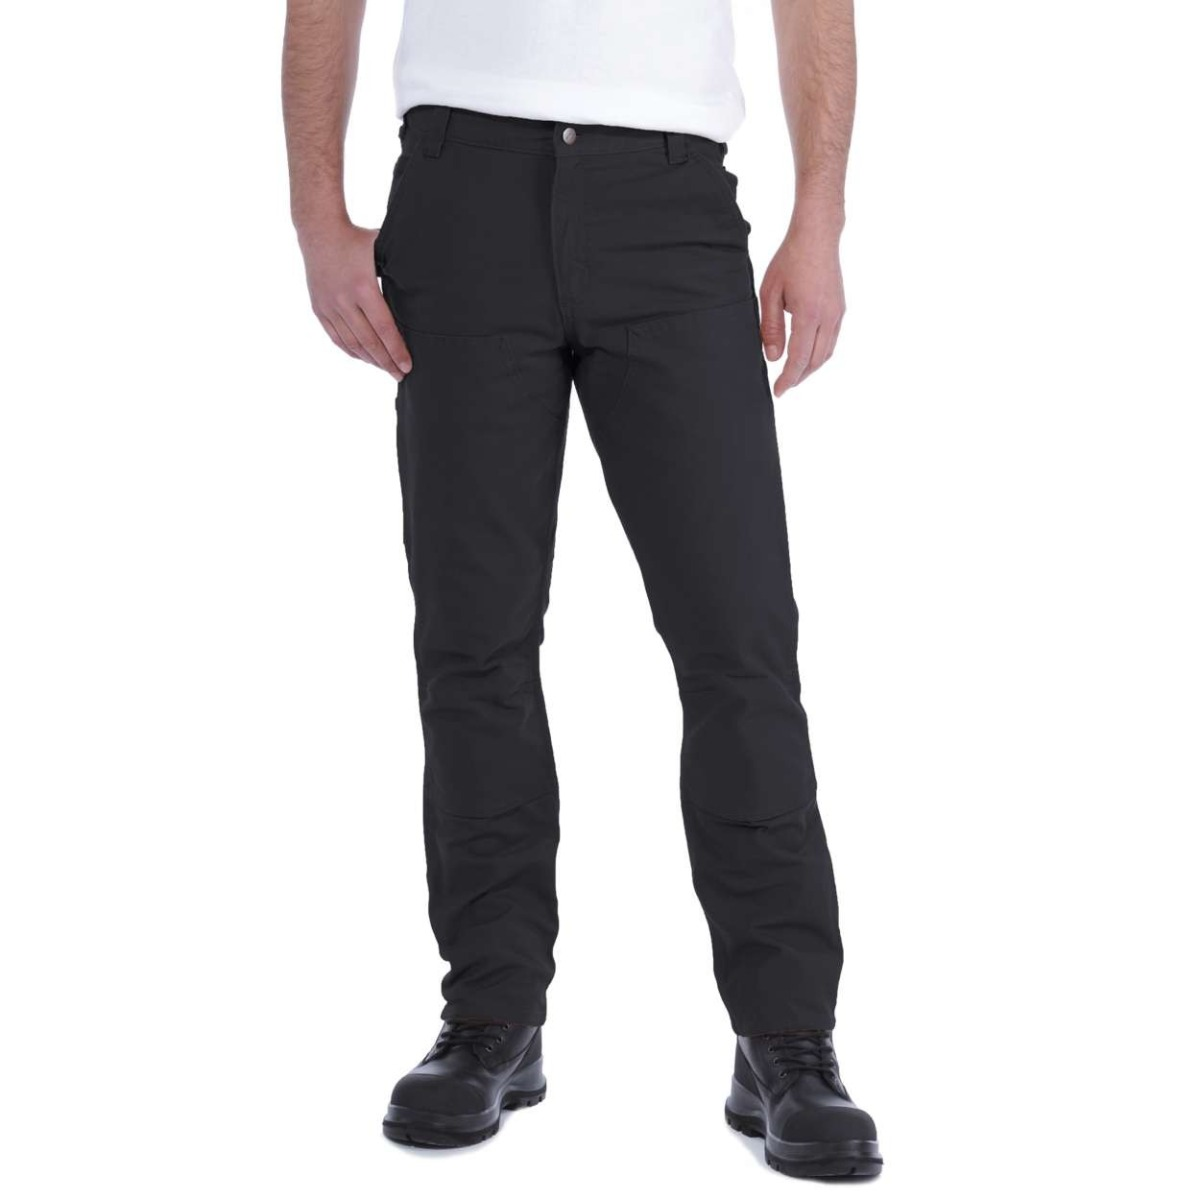 Carhartt Stretch Duck Double Front Trousers, Black, W34/L32